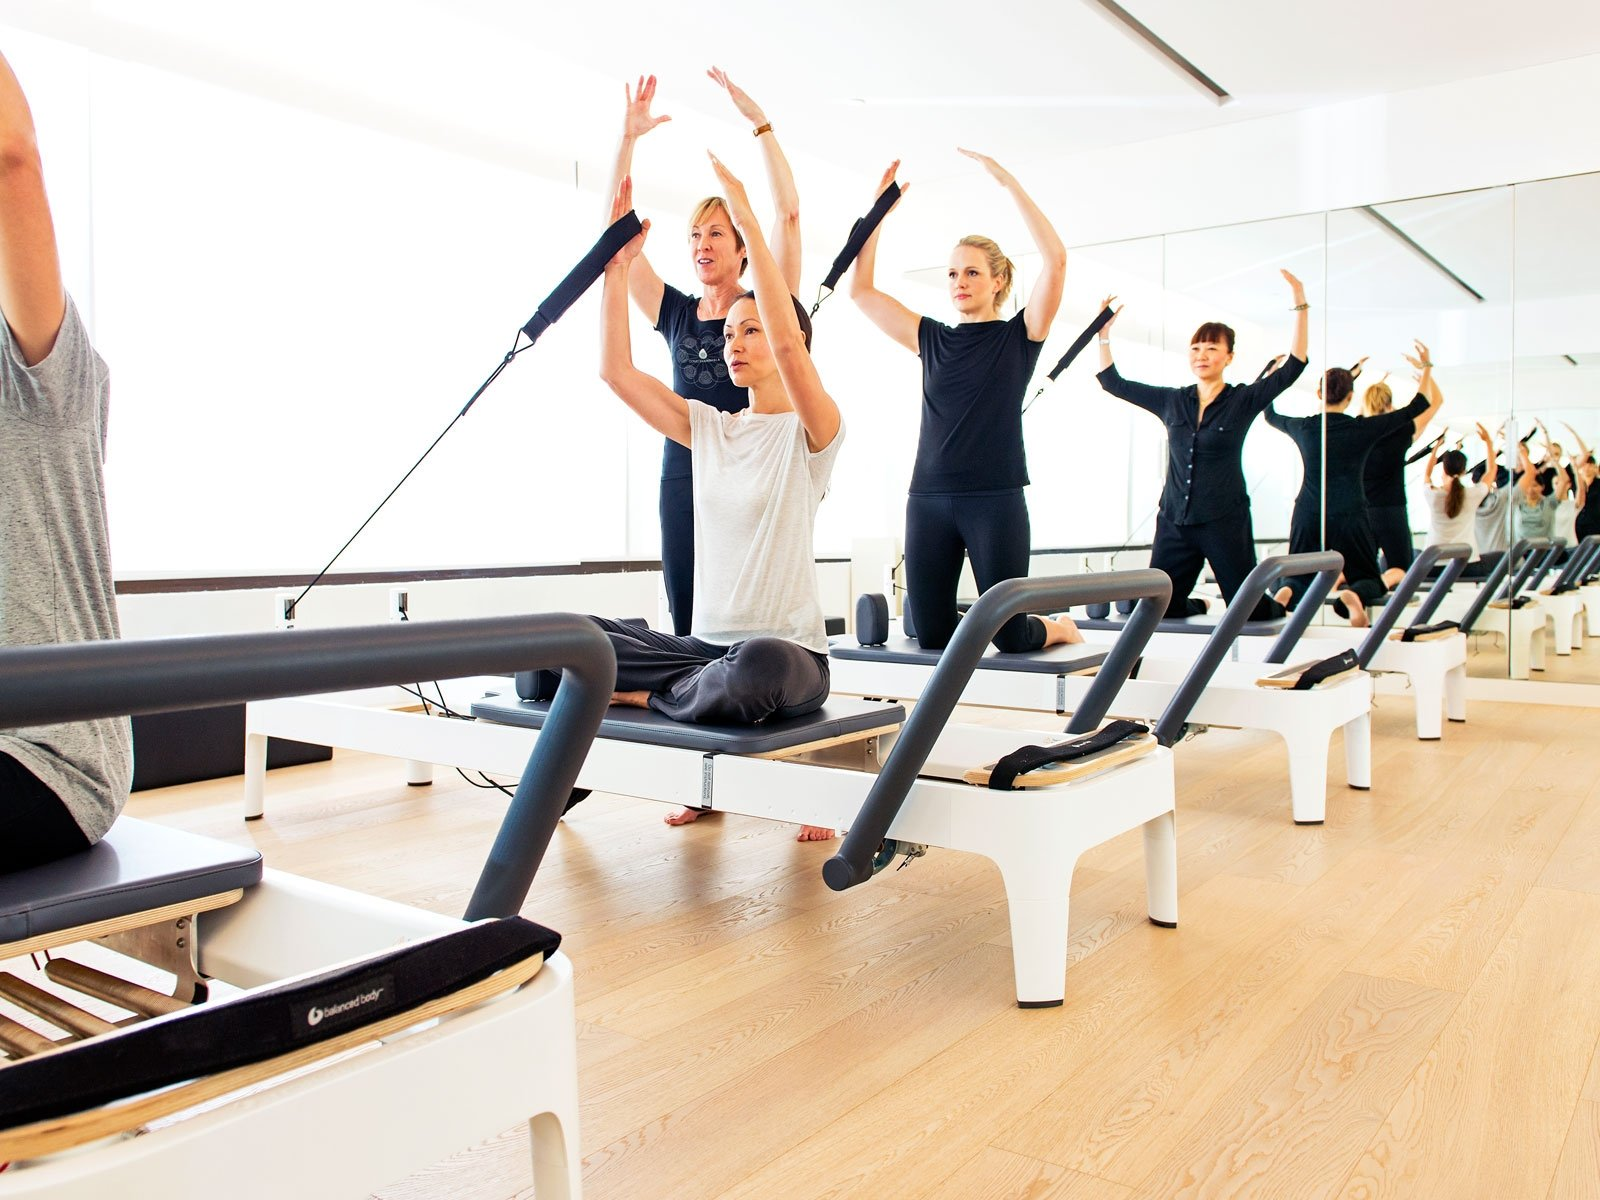 Pilates reformer group sessions in Abu Dhabi & Dubai